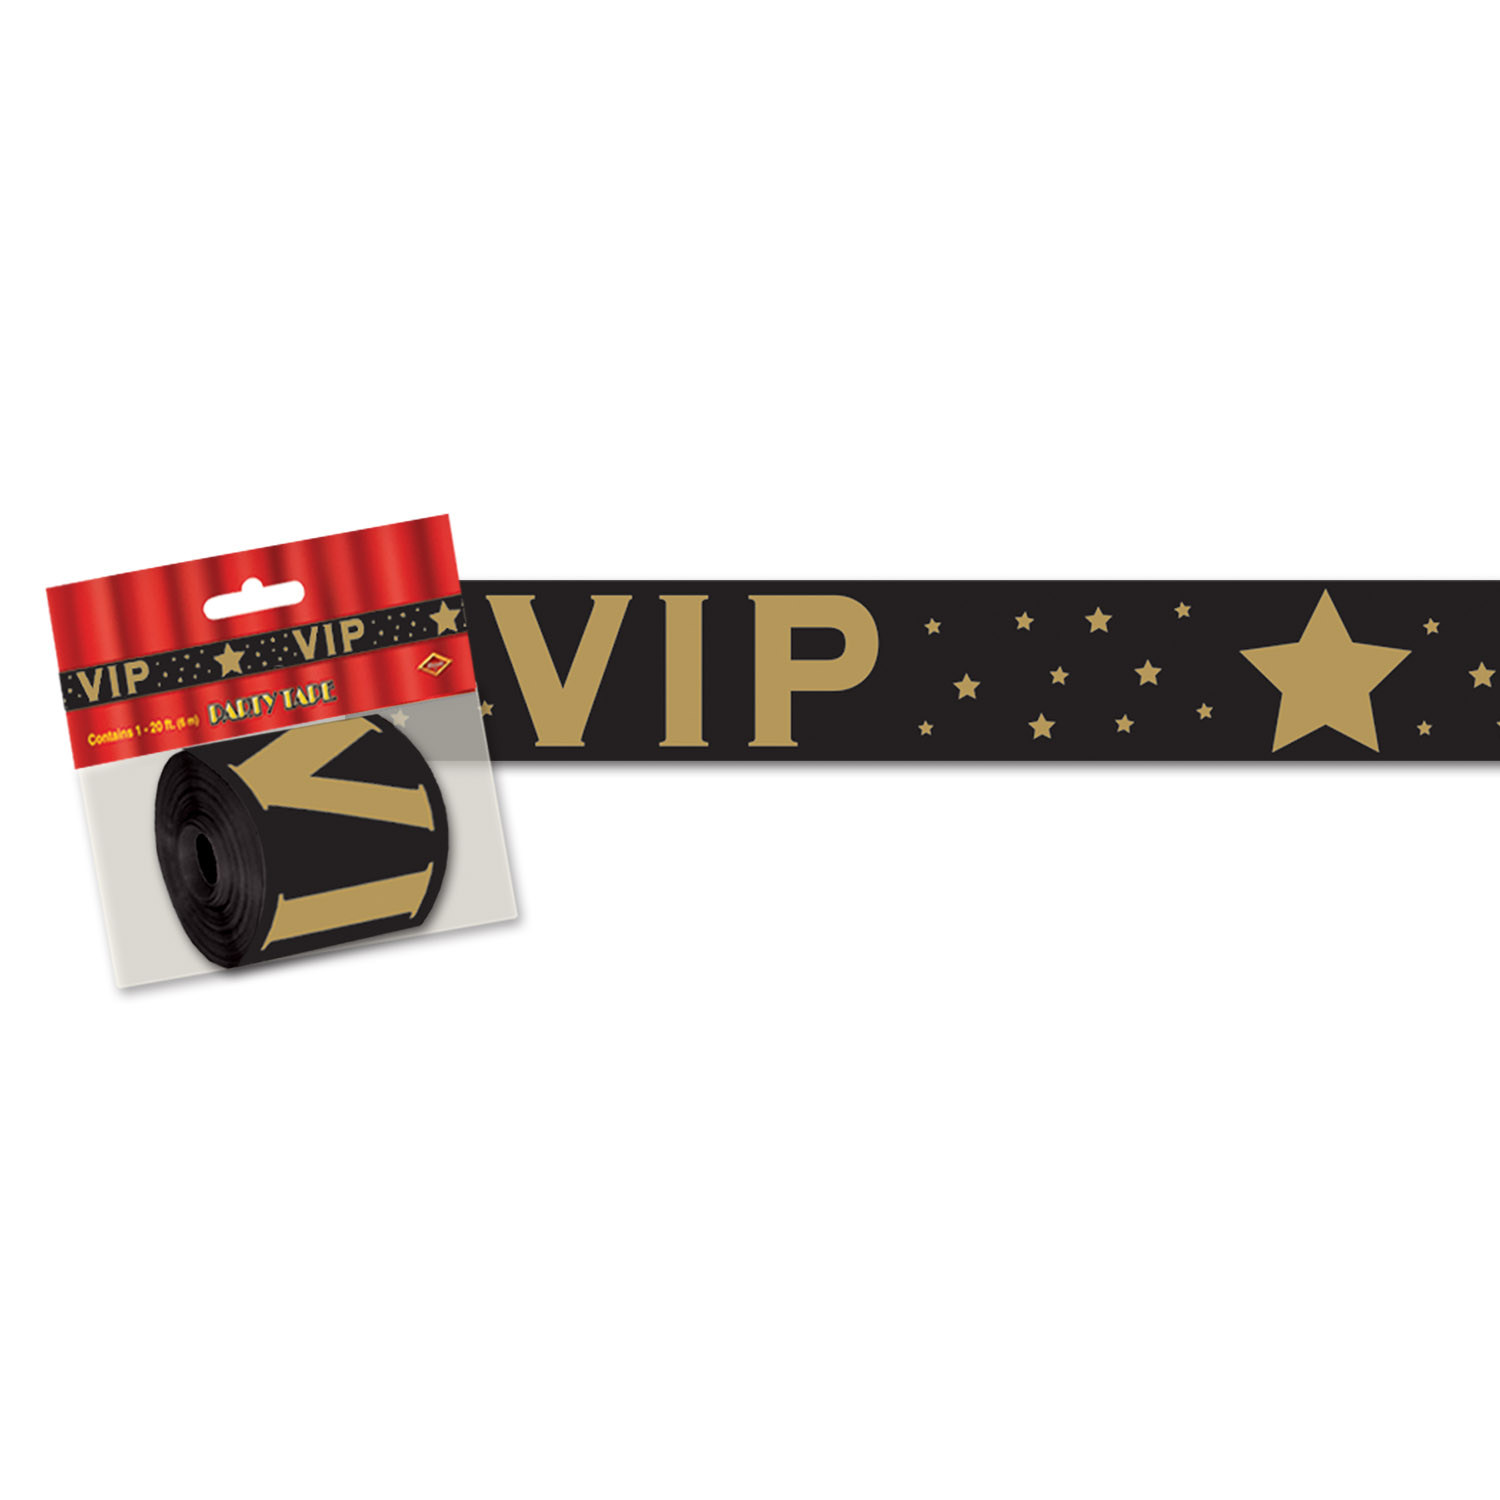 VIP Poly Decorating  Material (Pack of 12) VIP, Hollywood, streamer, tape, awards night